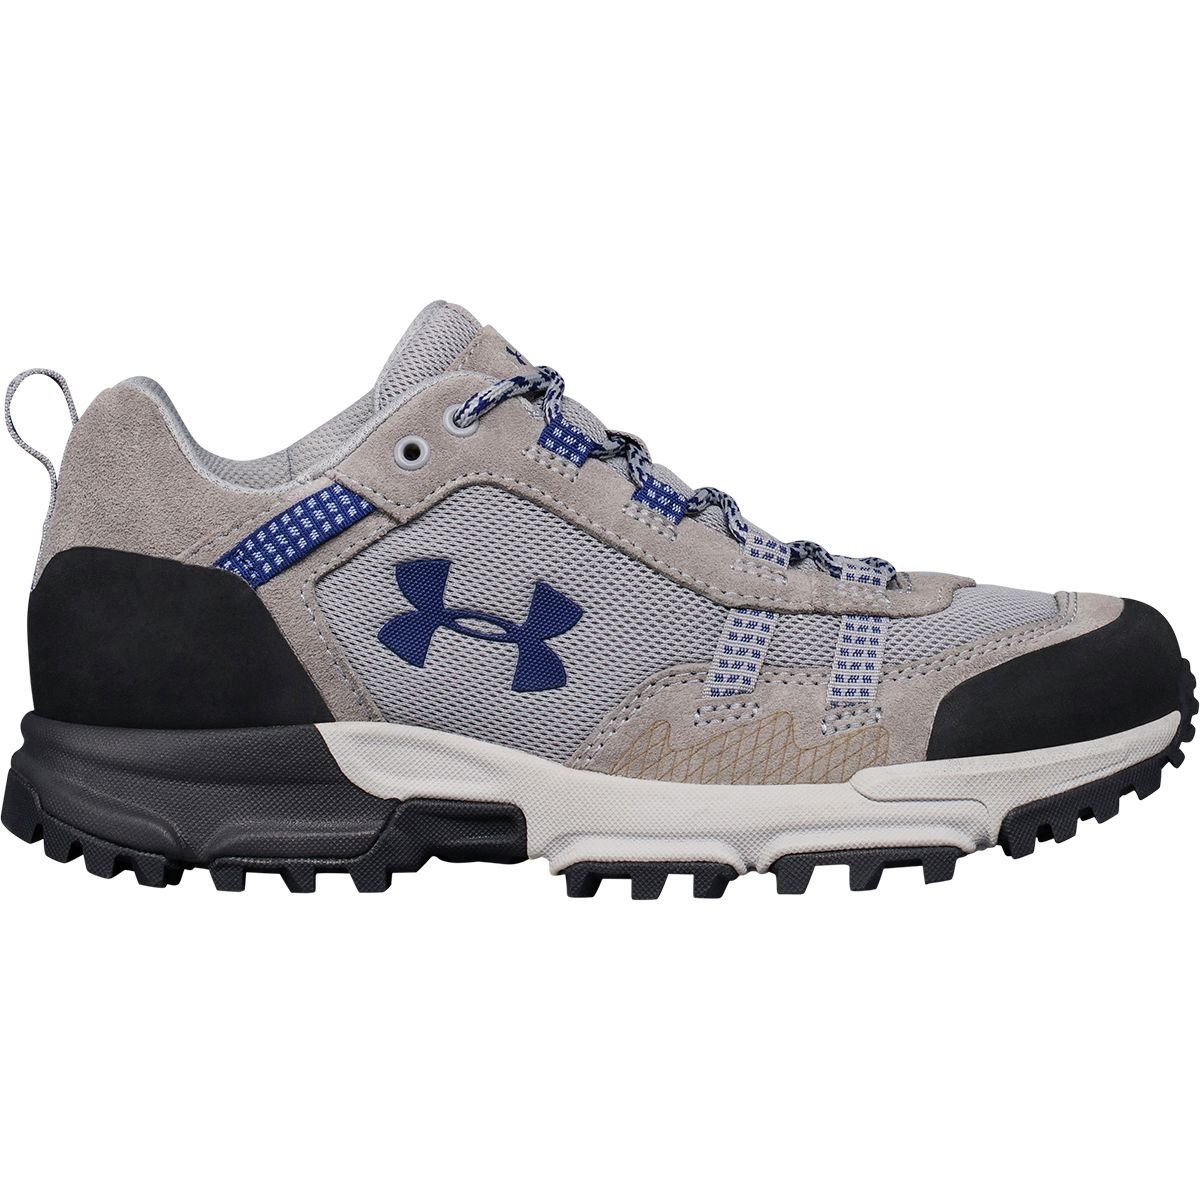 Under Armour Women's Post Canyon Low Hiking Boot B076SMQLKV 10 M US|Gray